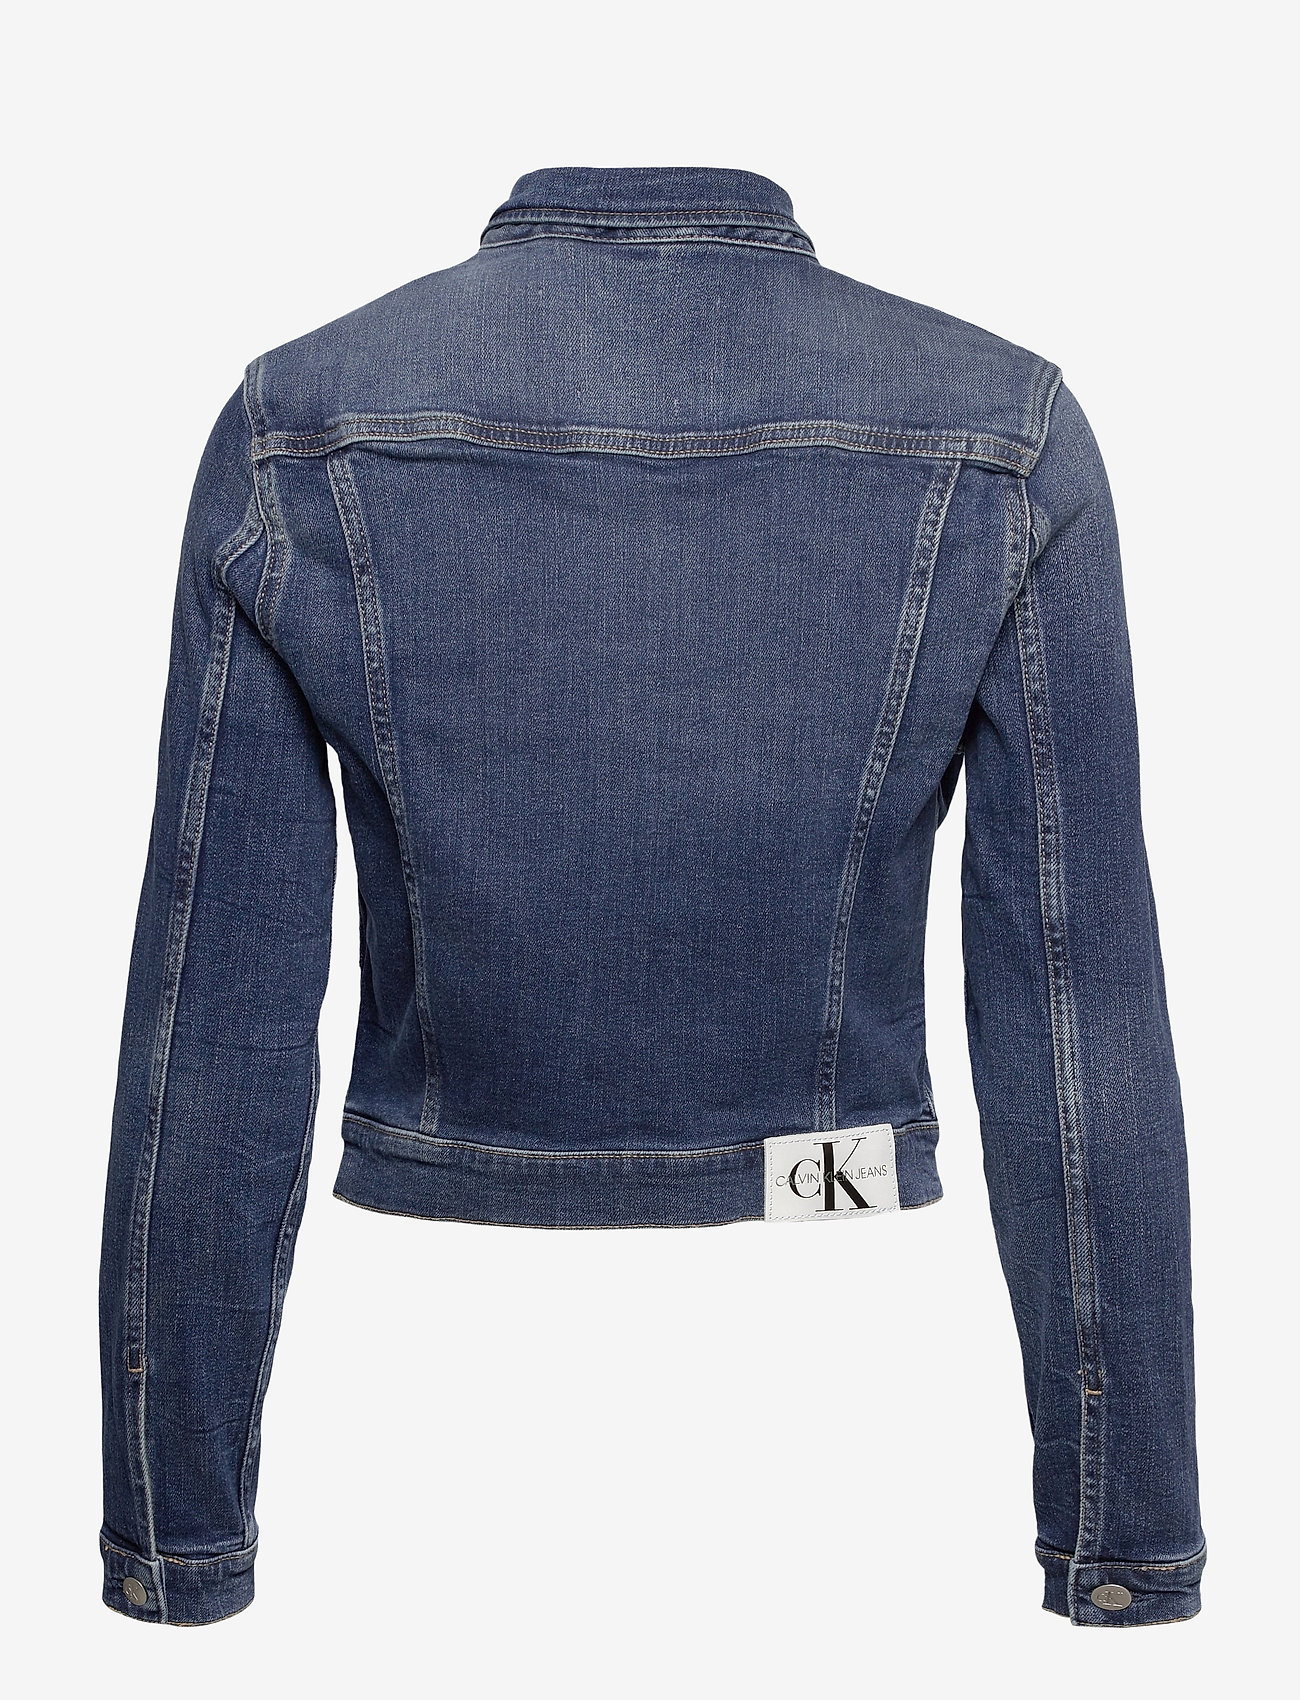 Calvin Klein Jeans - CROPPED 90S DENIM JACKET - jeansjakker - denim dark - 1